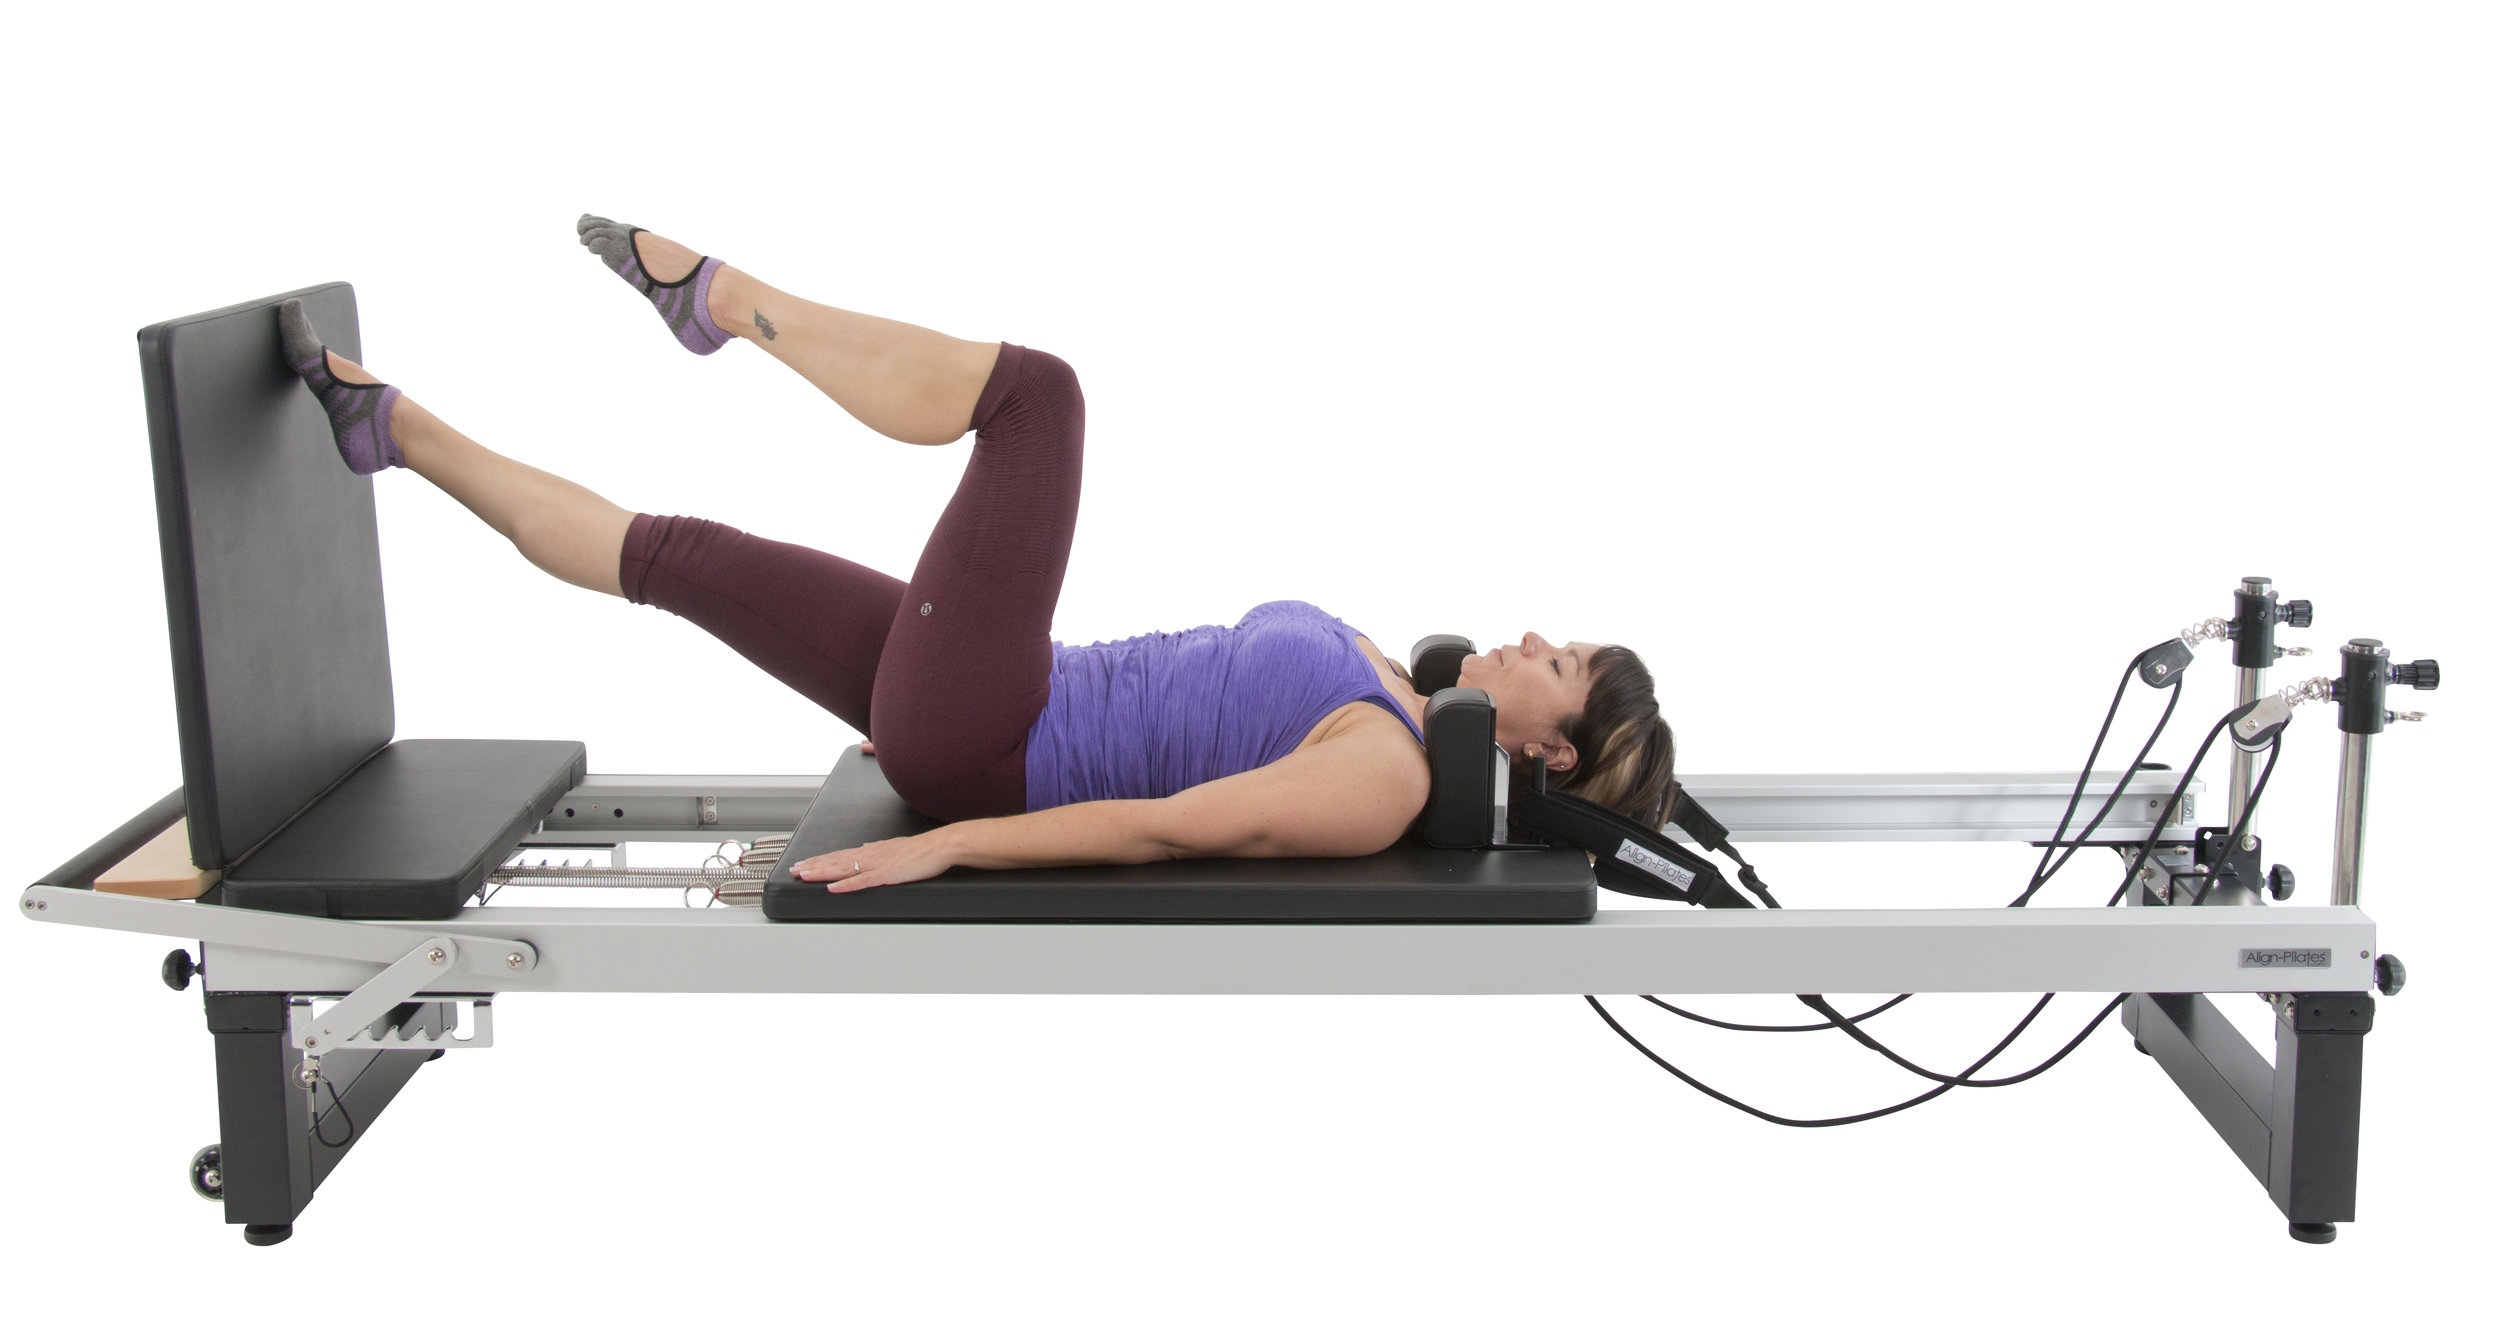 Align A2R2 studio pilates reformer with jumpboard